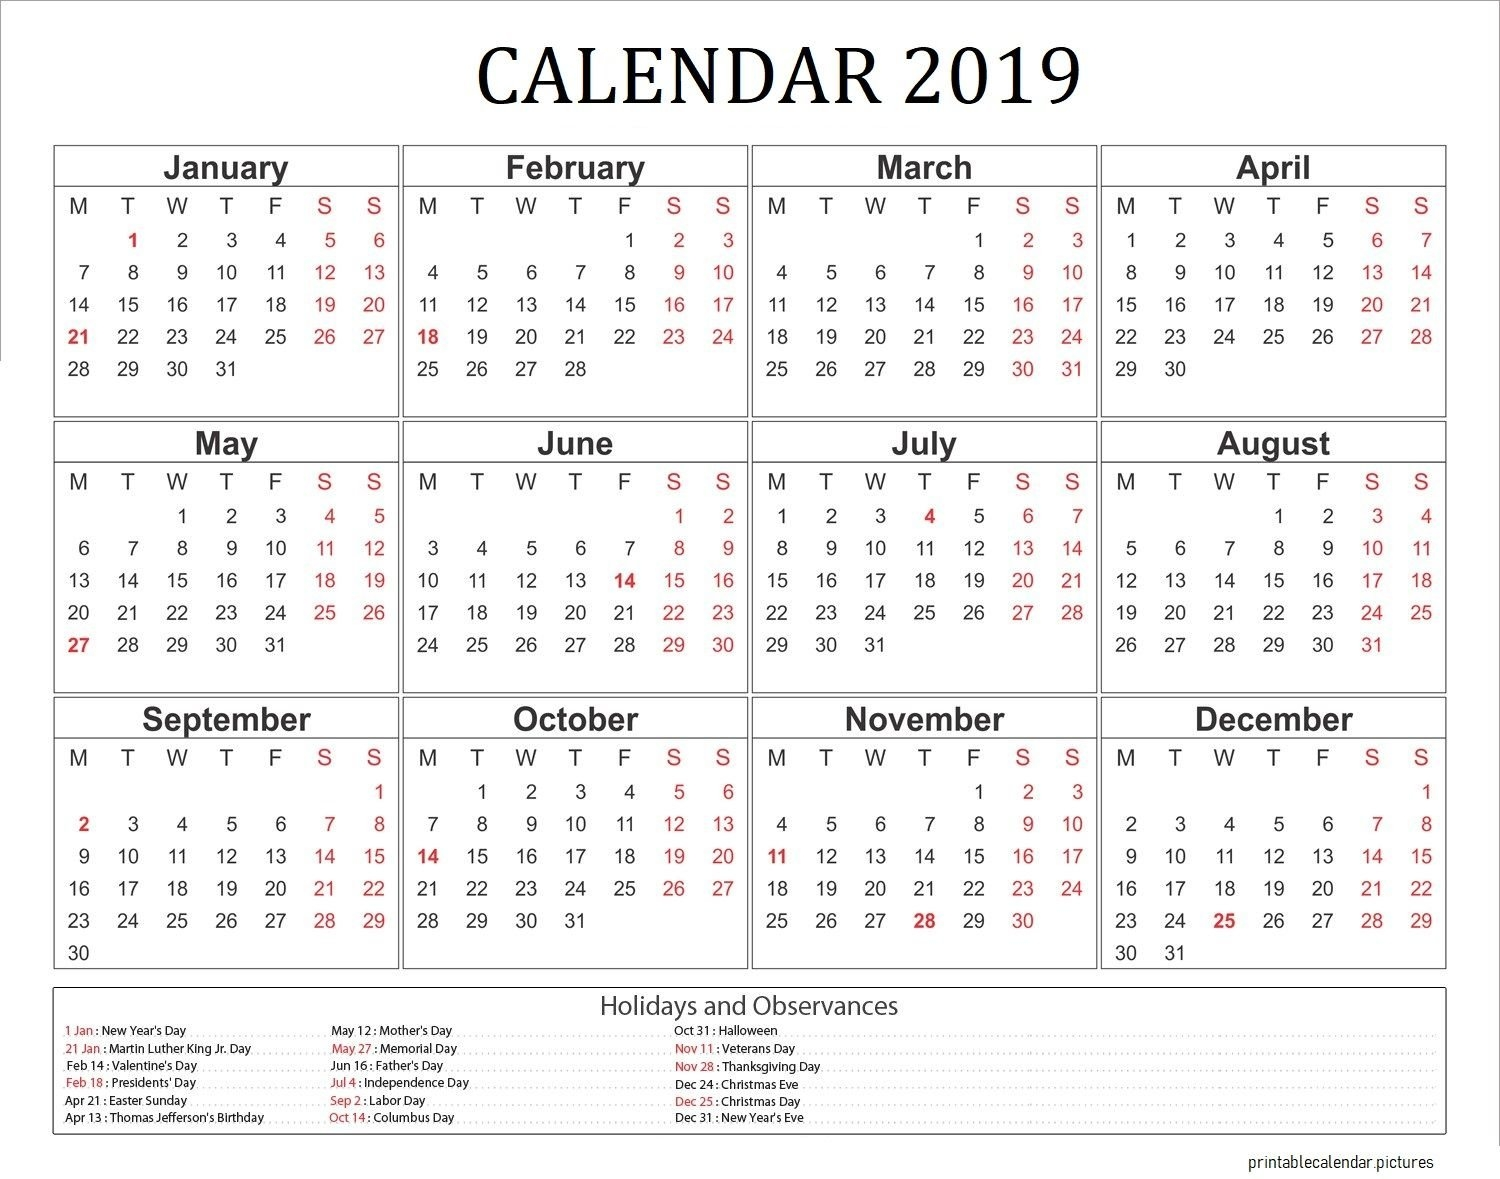 2019 Calendar With Holidays Usa | 2019 Calendar Holidays | Pinterest Calendar 2019 Including Holidays